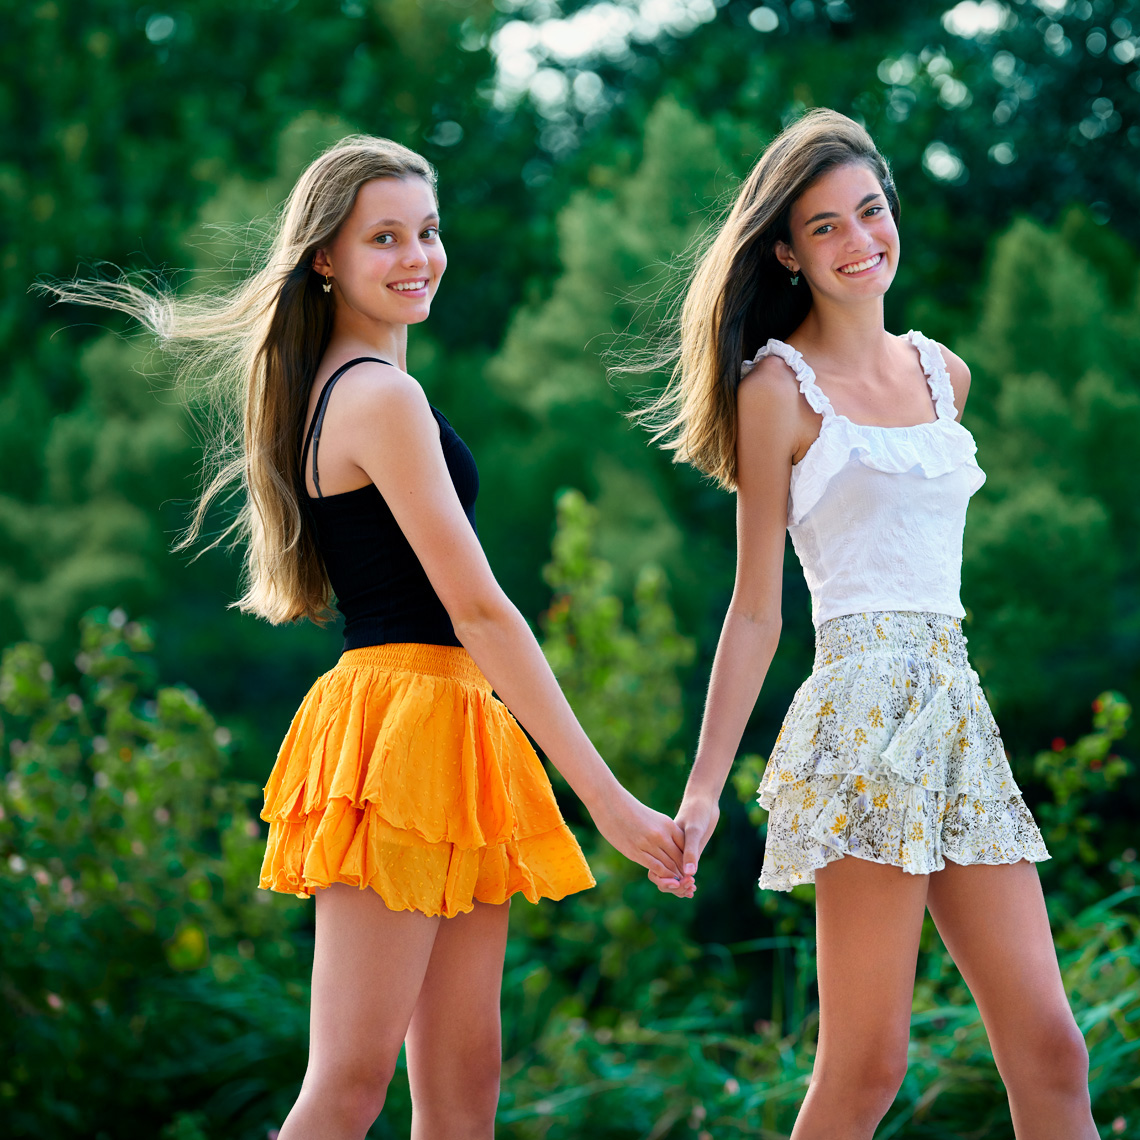 Portrait of ten sisters Lily and Lane Glassmoyer on location in Dallas, Texas, by John Derryberry Photography